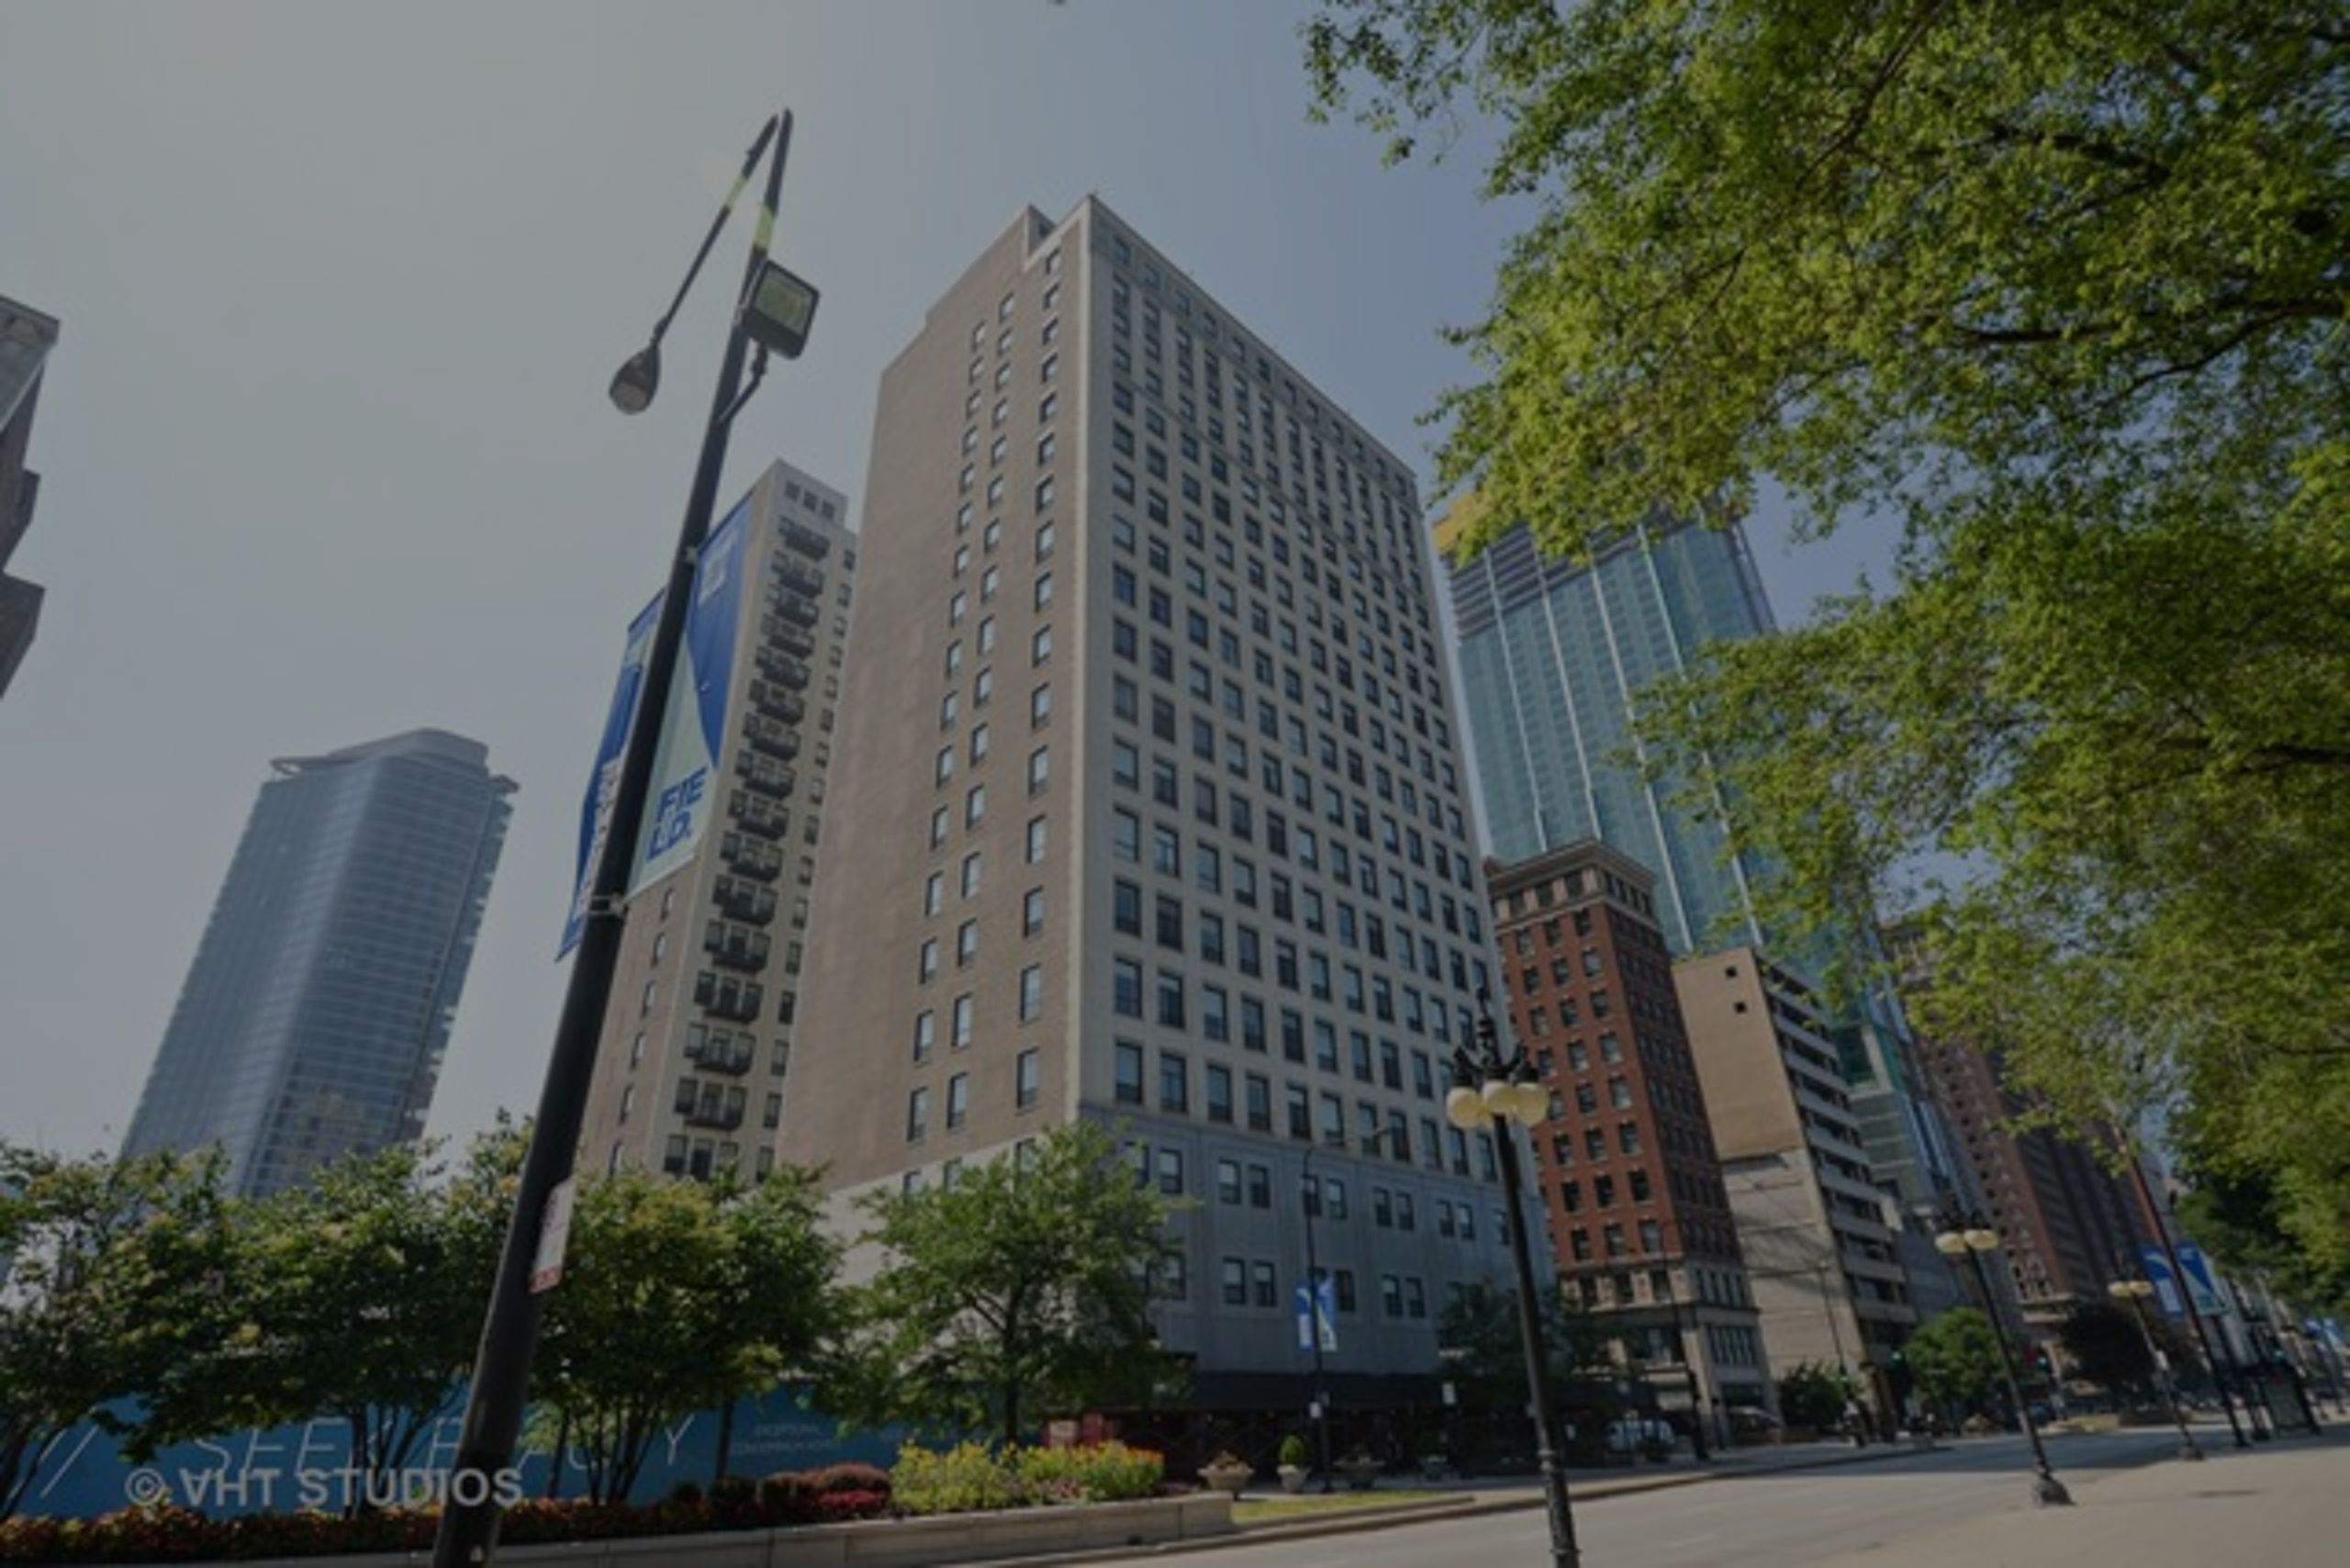 JUST SOLD: 910 S MICHIGAN UNIT 611, CHICAGO, IL 60610